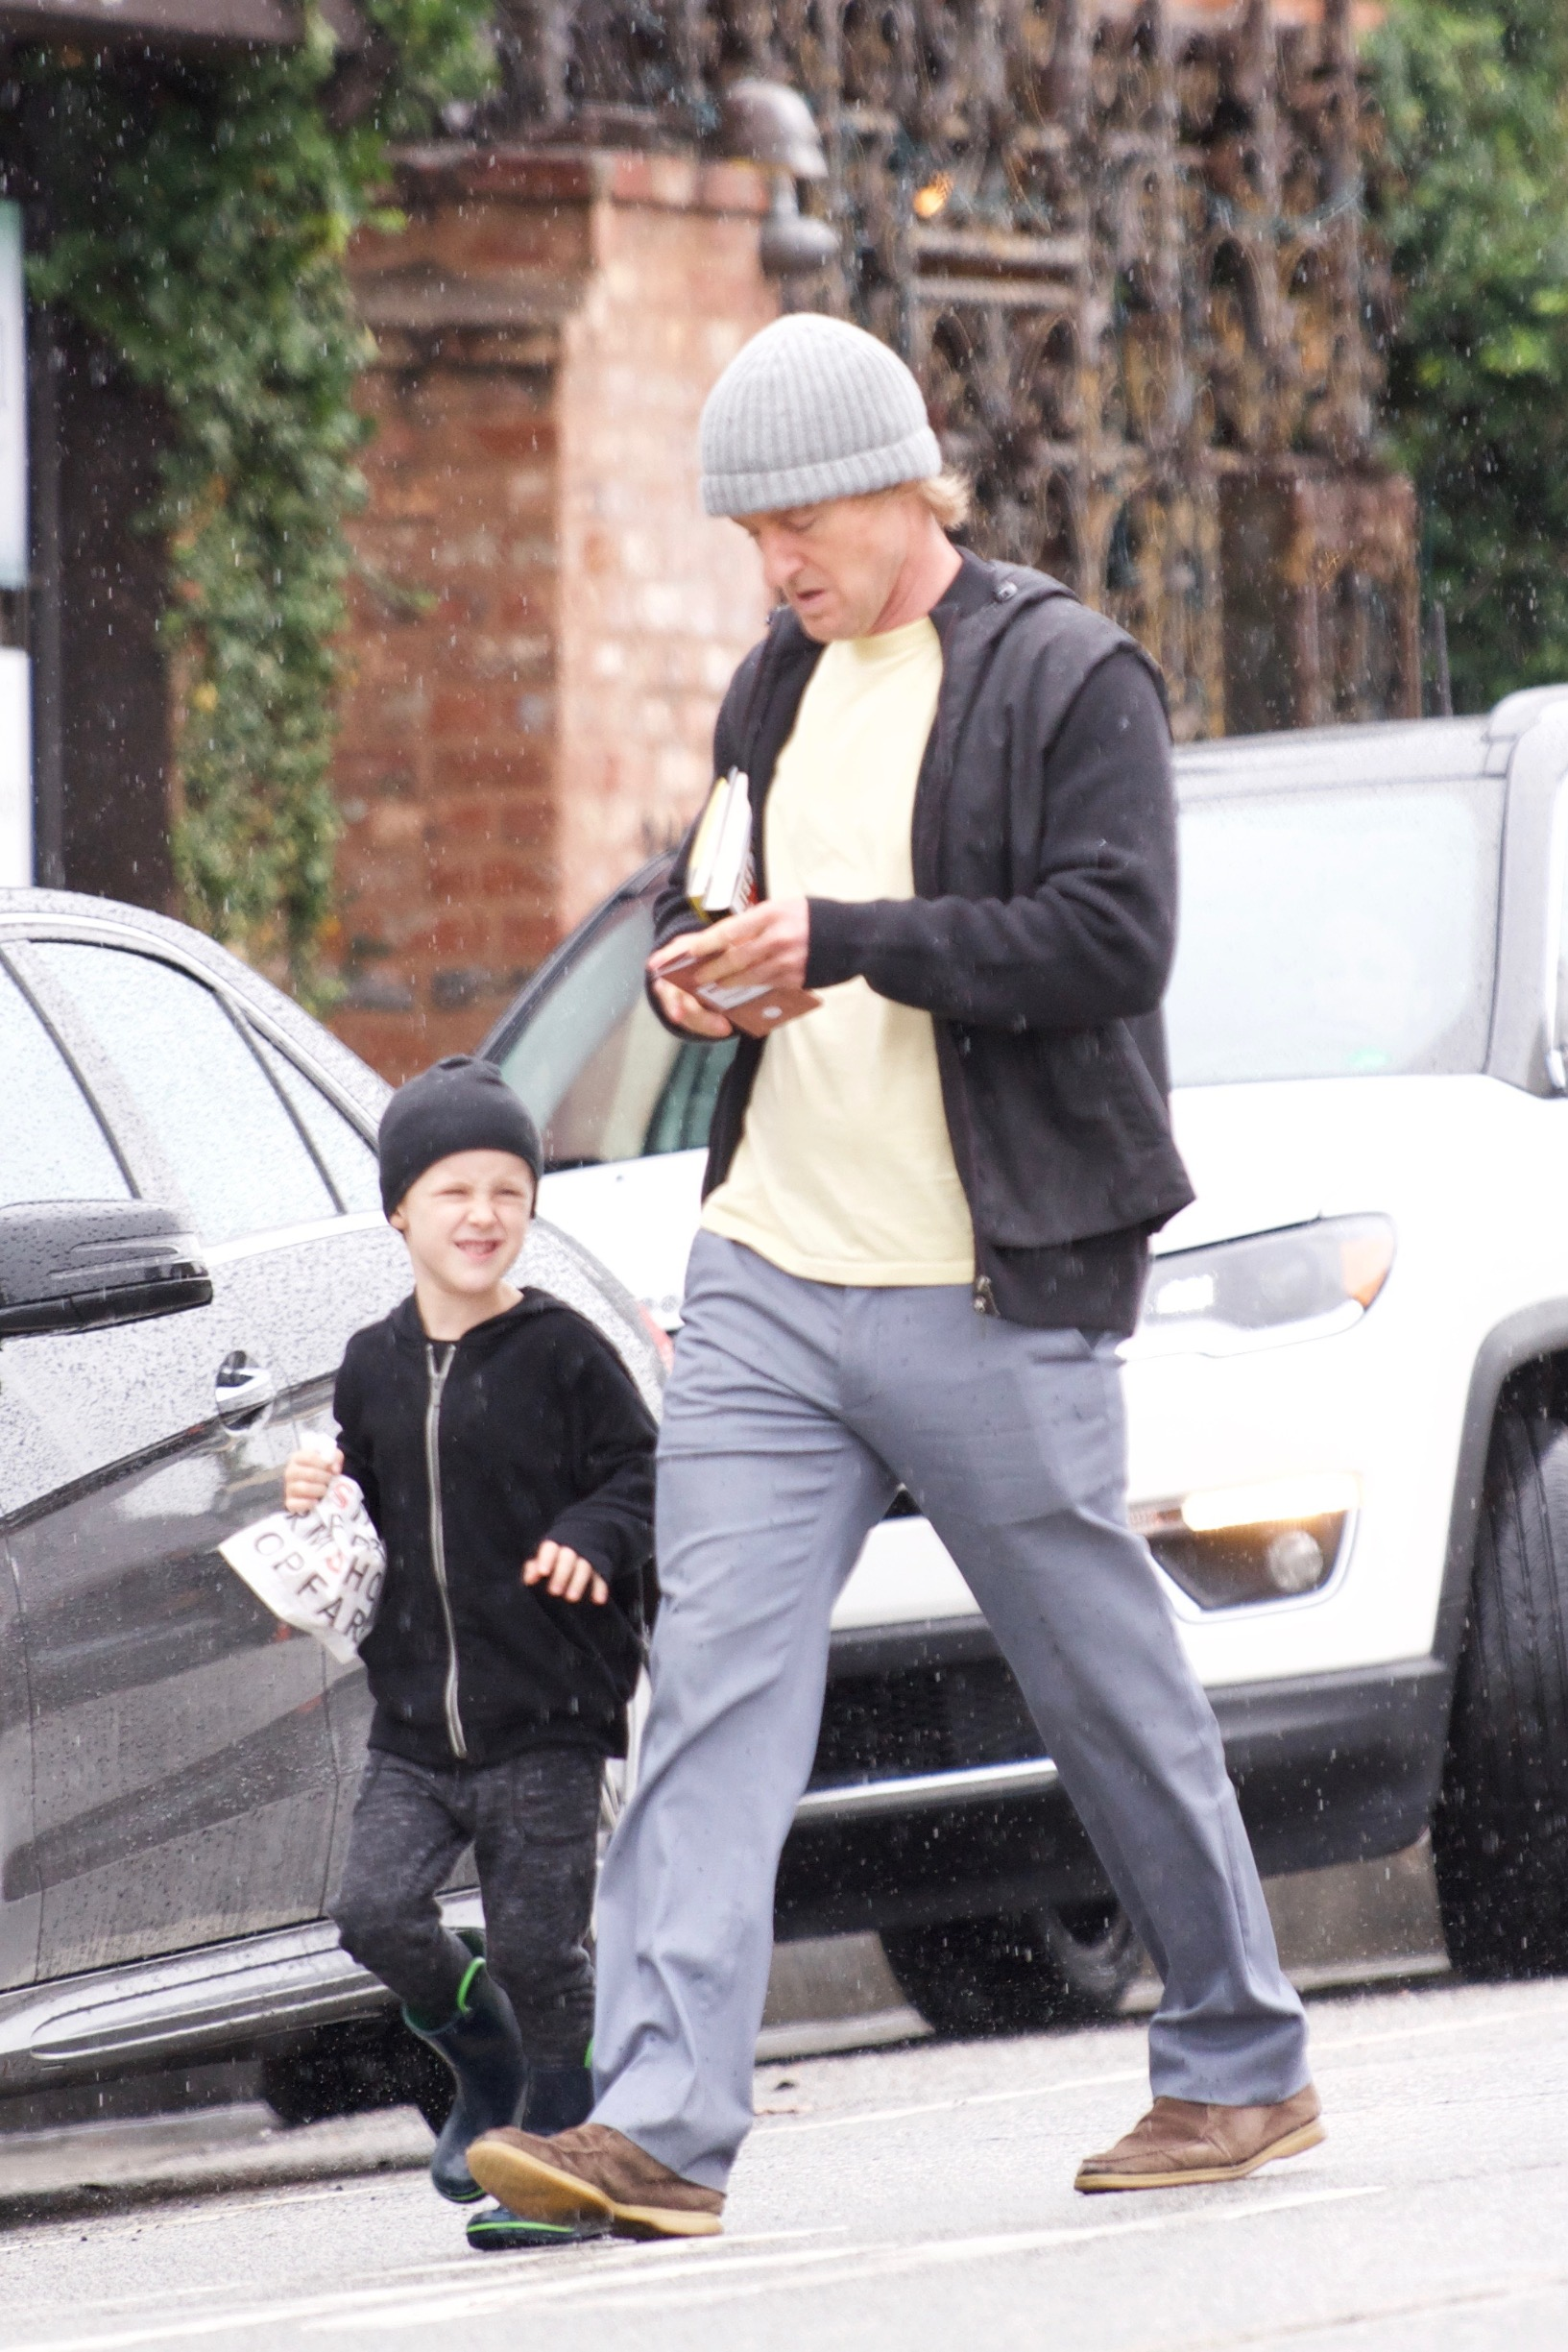 EXCLUSIVE: Owen Wilson spending time with his son on a rainy day.   ***SPECIAL INSTRUCTIONS*** Please pixelate children's faces before publication.***. 15 Jan 2019, Image: 407678200, License: Rights-managed, Restrictions: World Rights, Model Release: no, Credit line: MEGA / Mega Agency / Profimedia